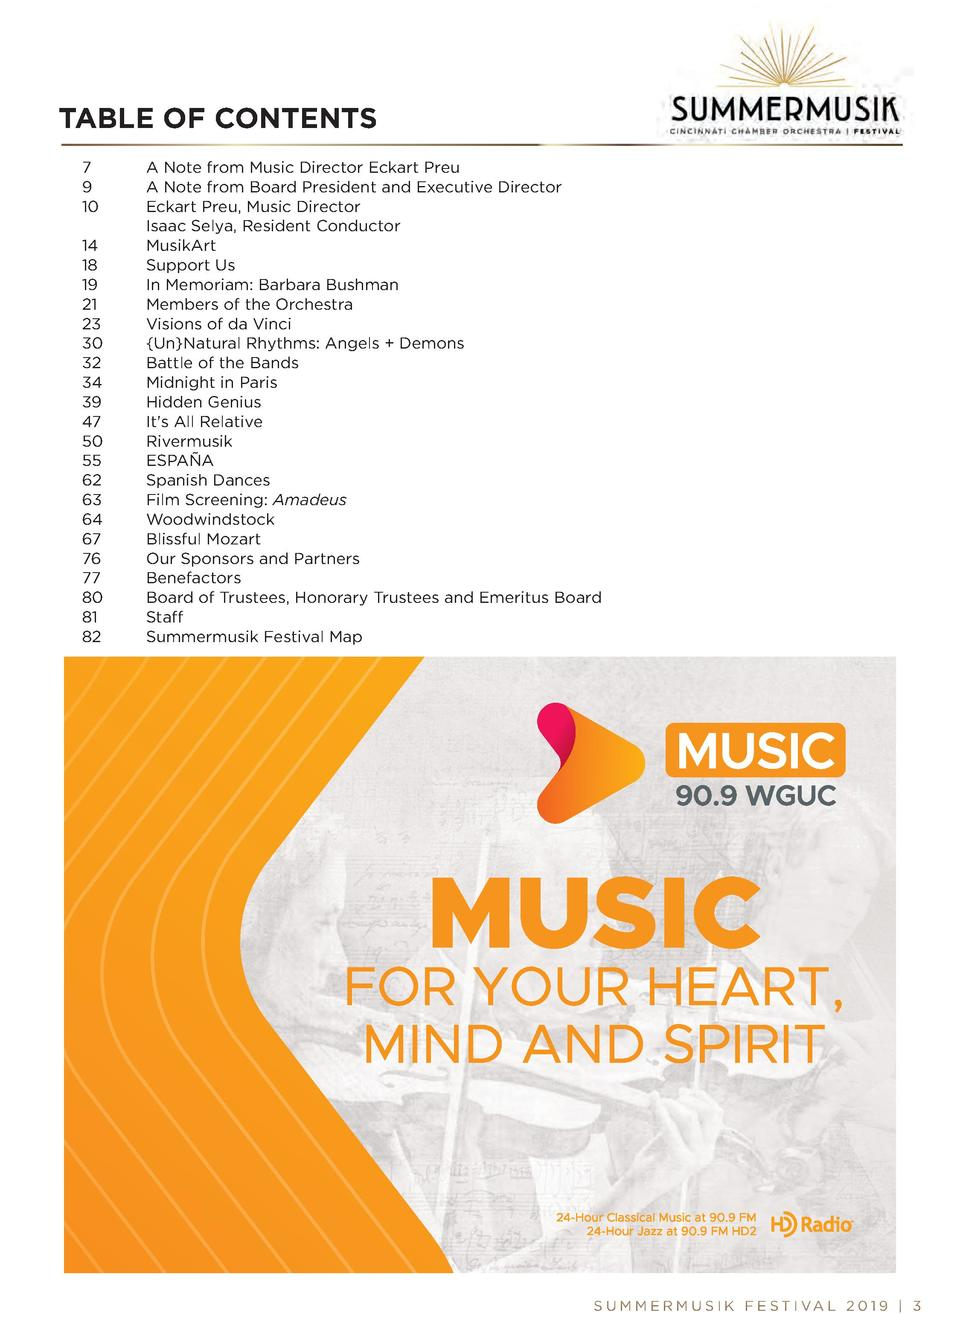 TABLE OF CONTENTS 7 9 10 14 18 19 21 23 30 32 34 39 47 50 55 62 63 64 67 76 77 80 81 82  A Note from Music Director Eckart...